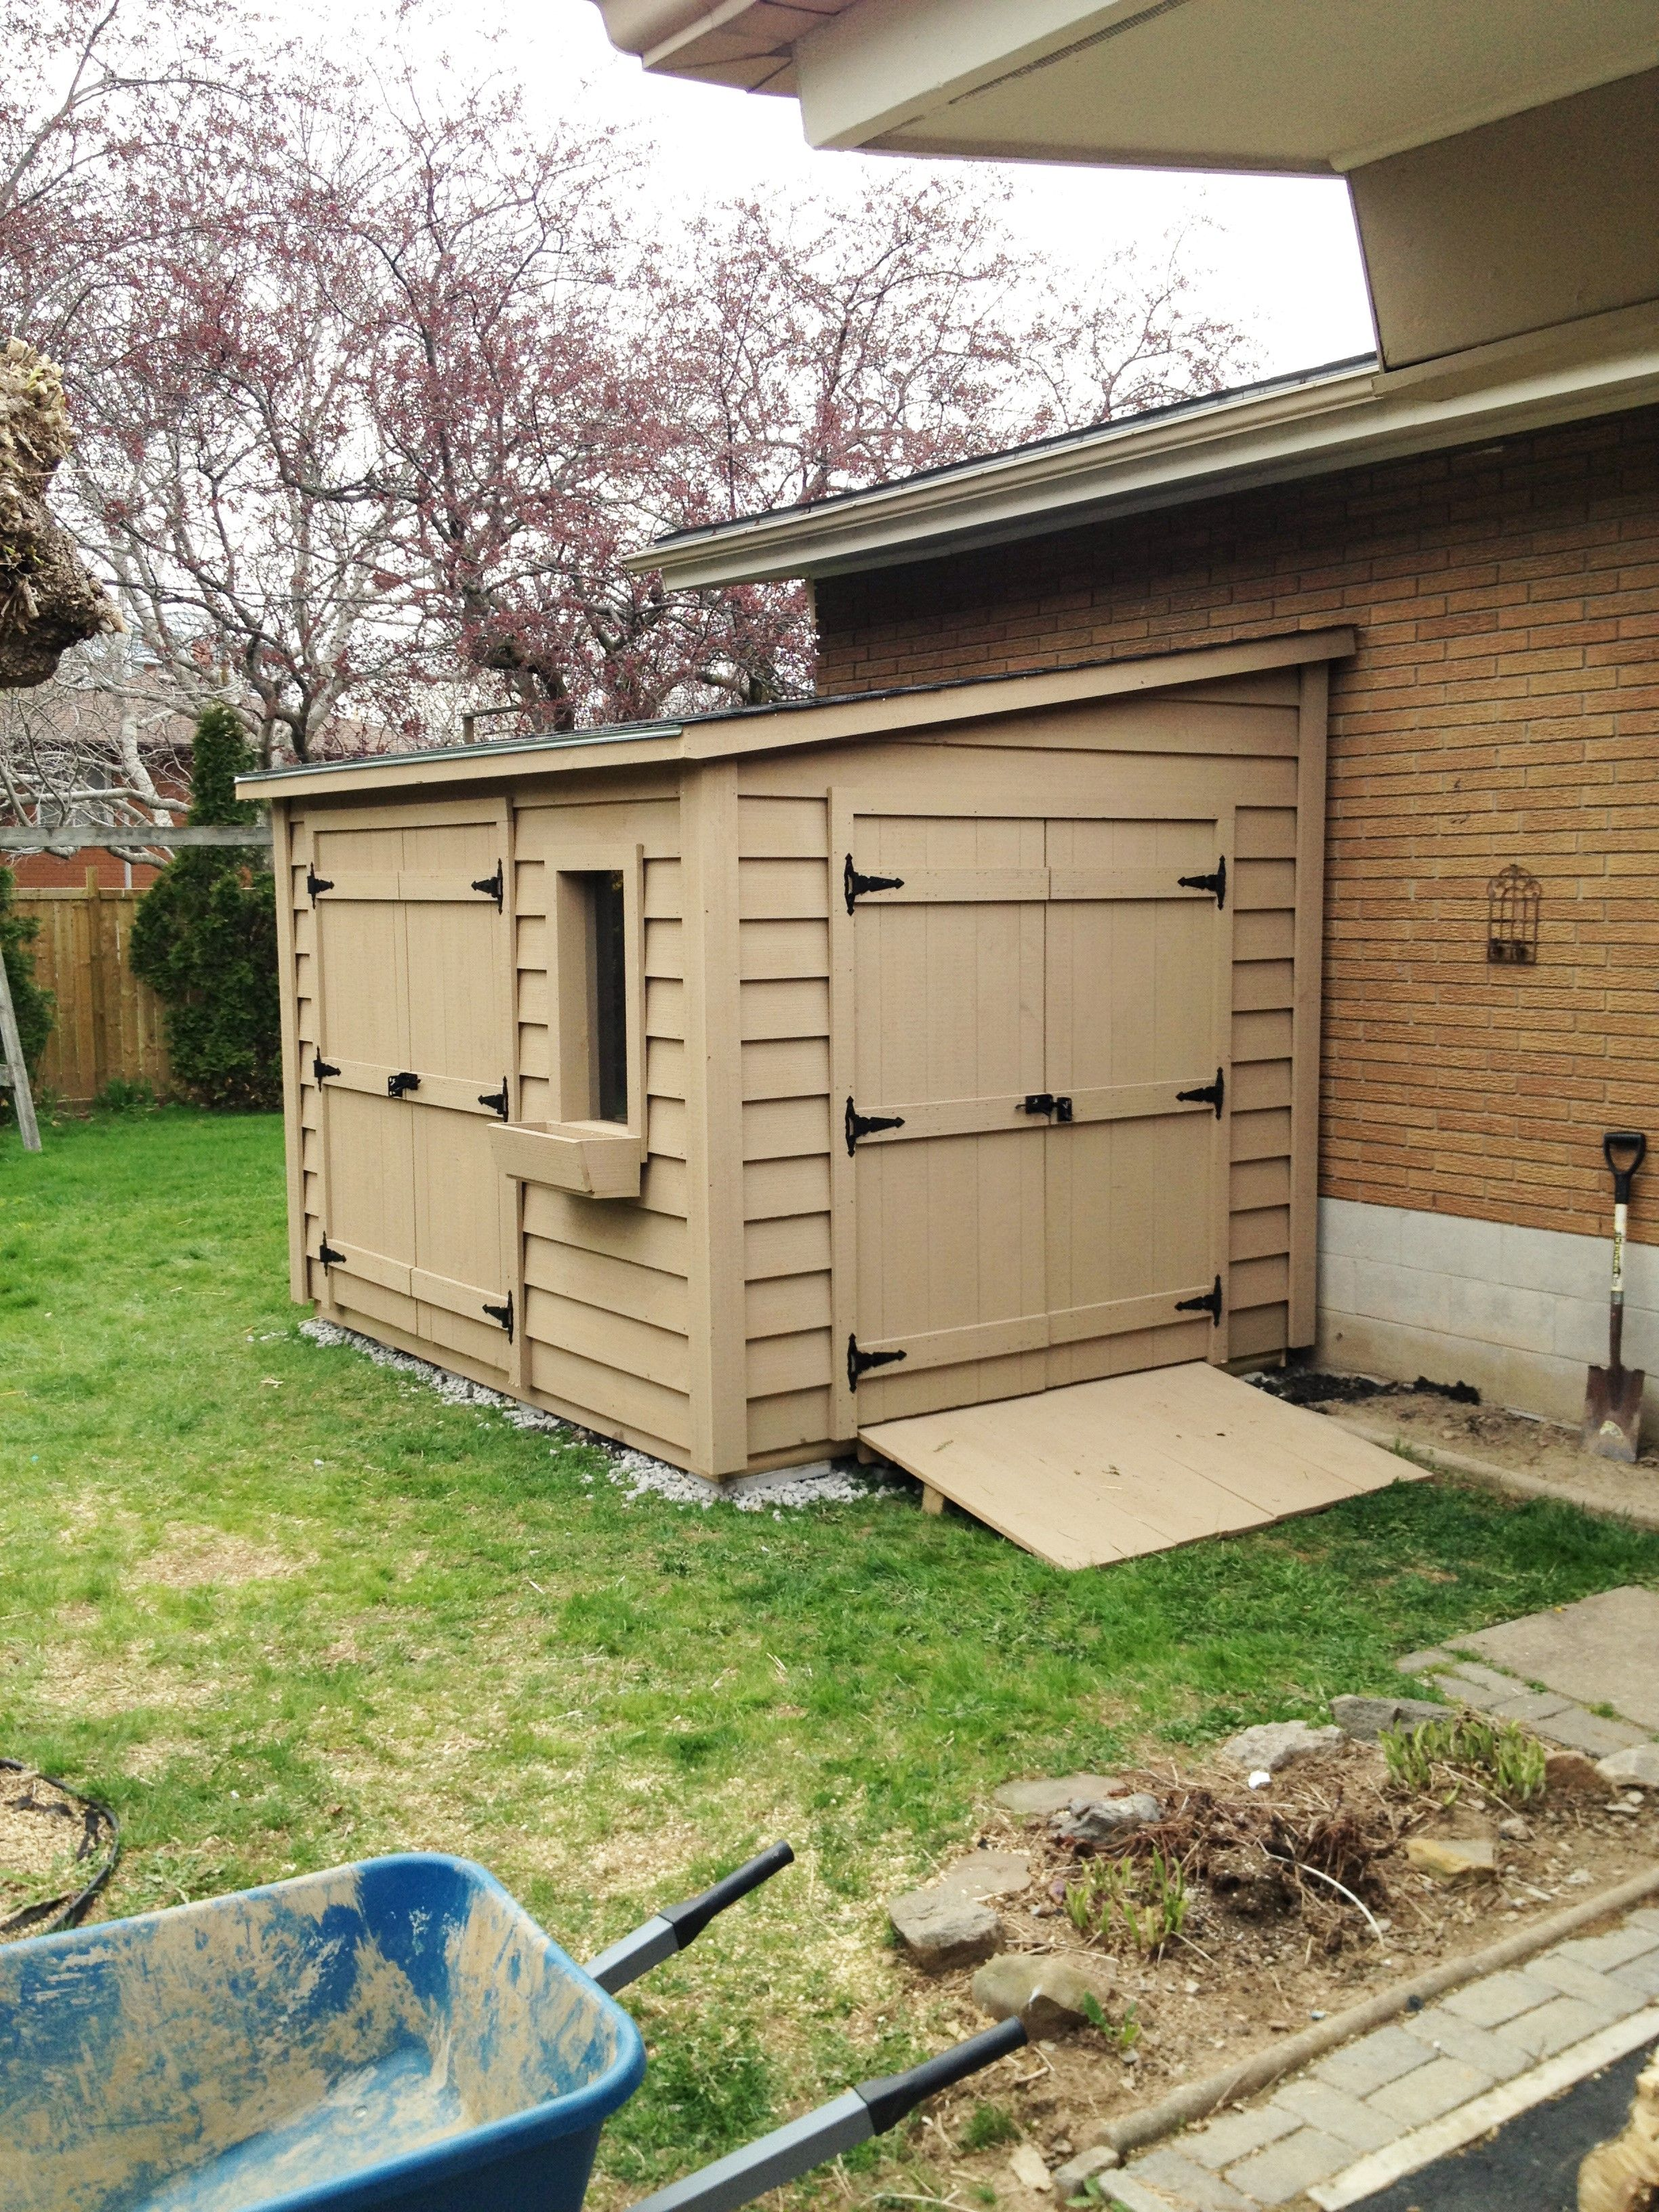 8x10 Lean To Shed With 2 5ft Double Doors And One Window The Stain Is Taupe Shed Plans Building A Shed Shed